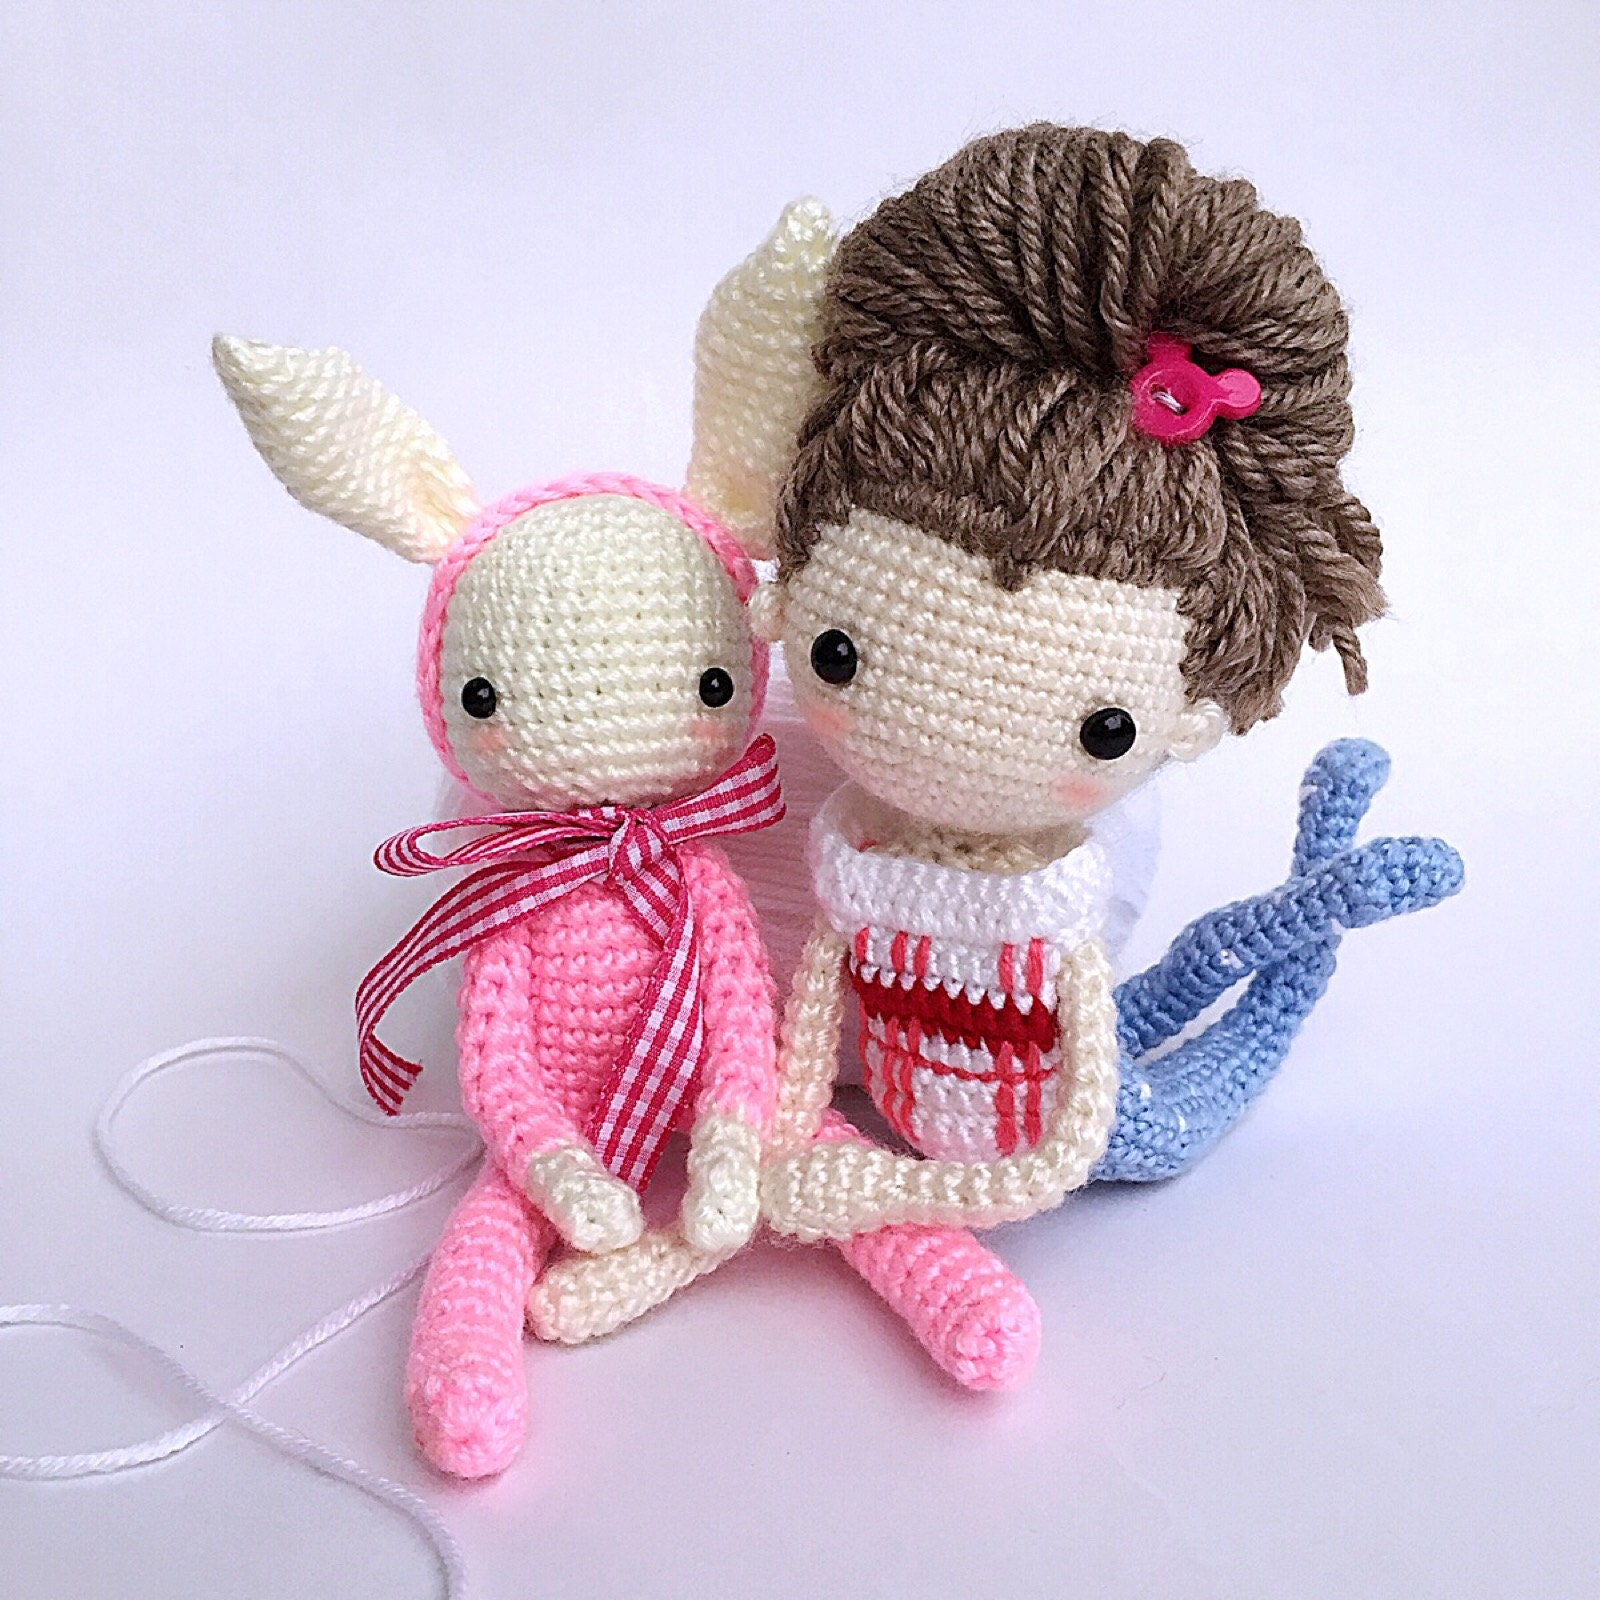 Love art doll handmade crochet.... by LydiawlcMW on Etsy